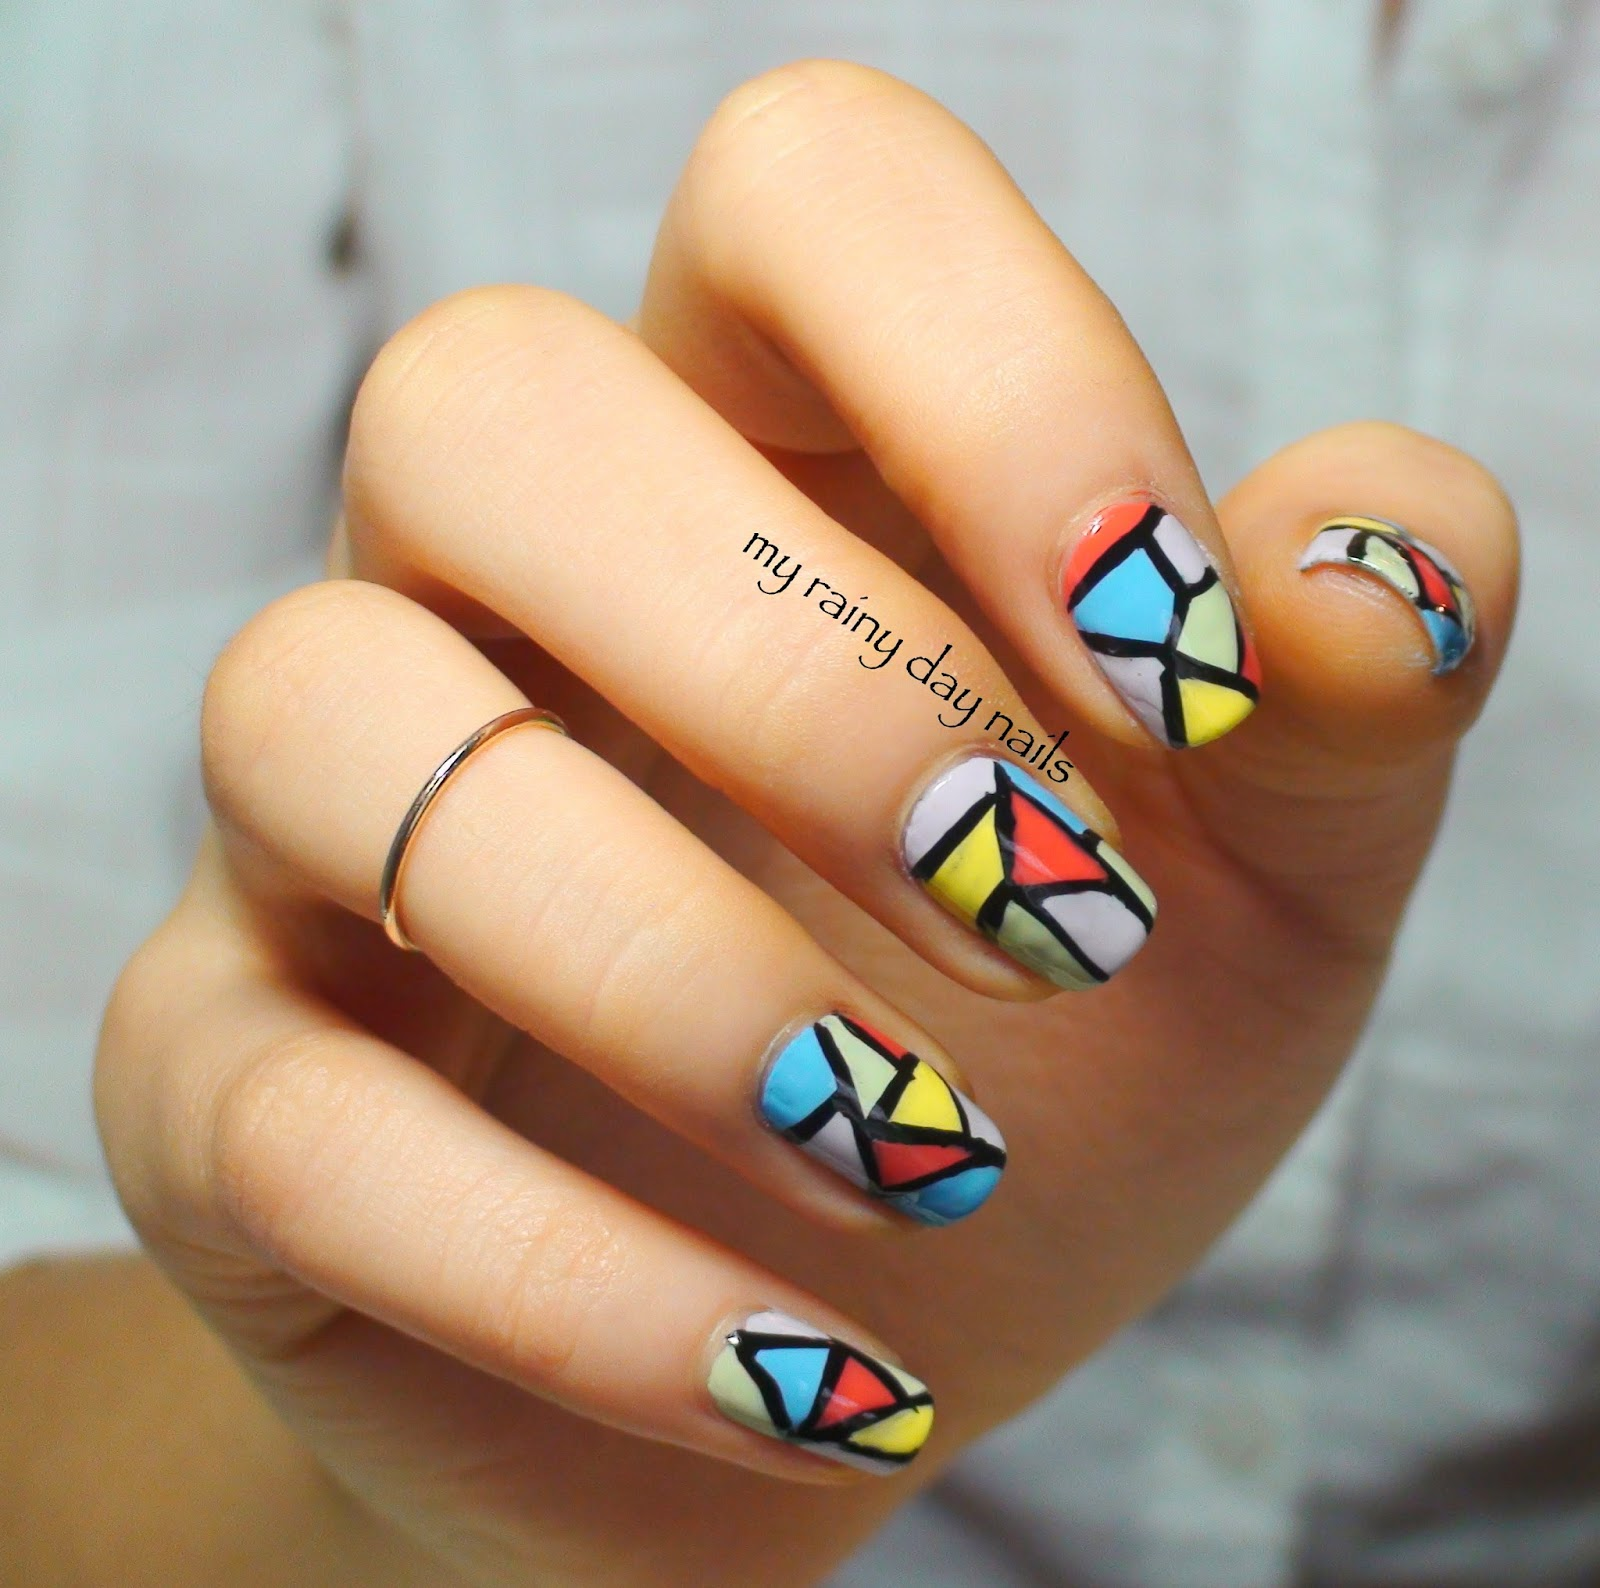 My Rainy Day Nails: Stained Glass Nails